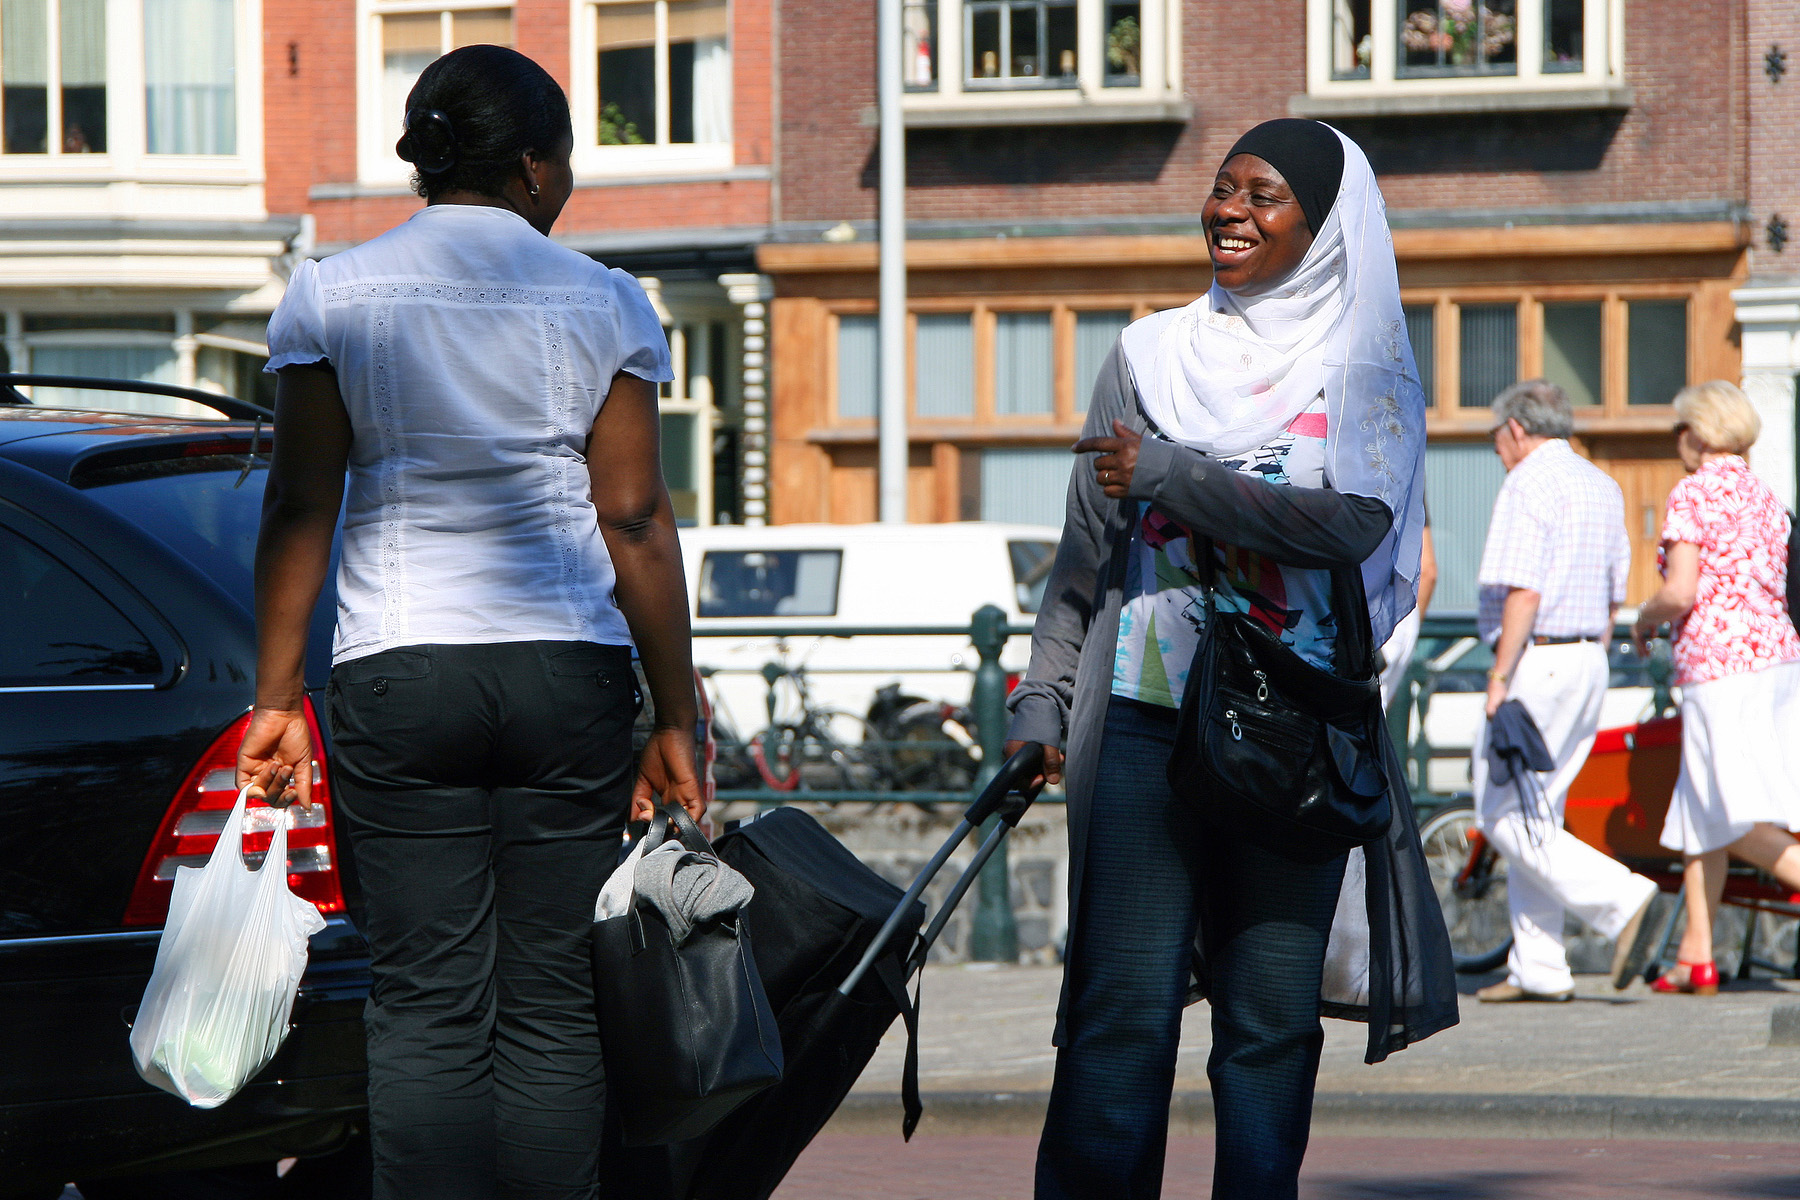 Immigrants in the Netherlands